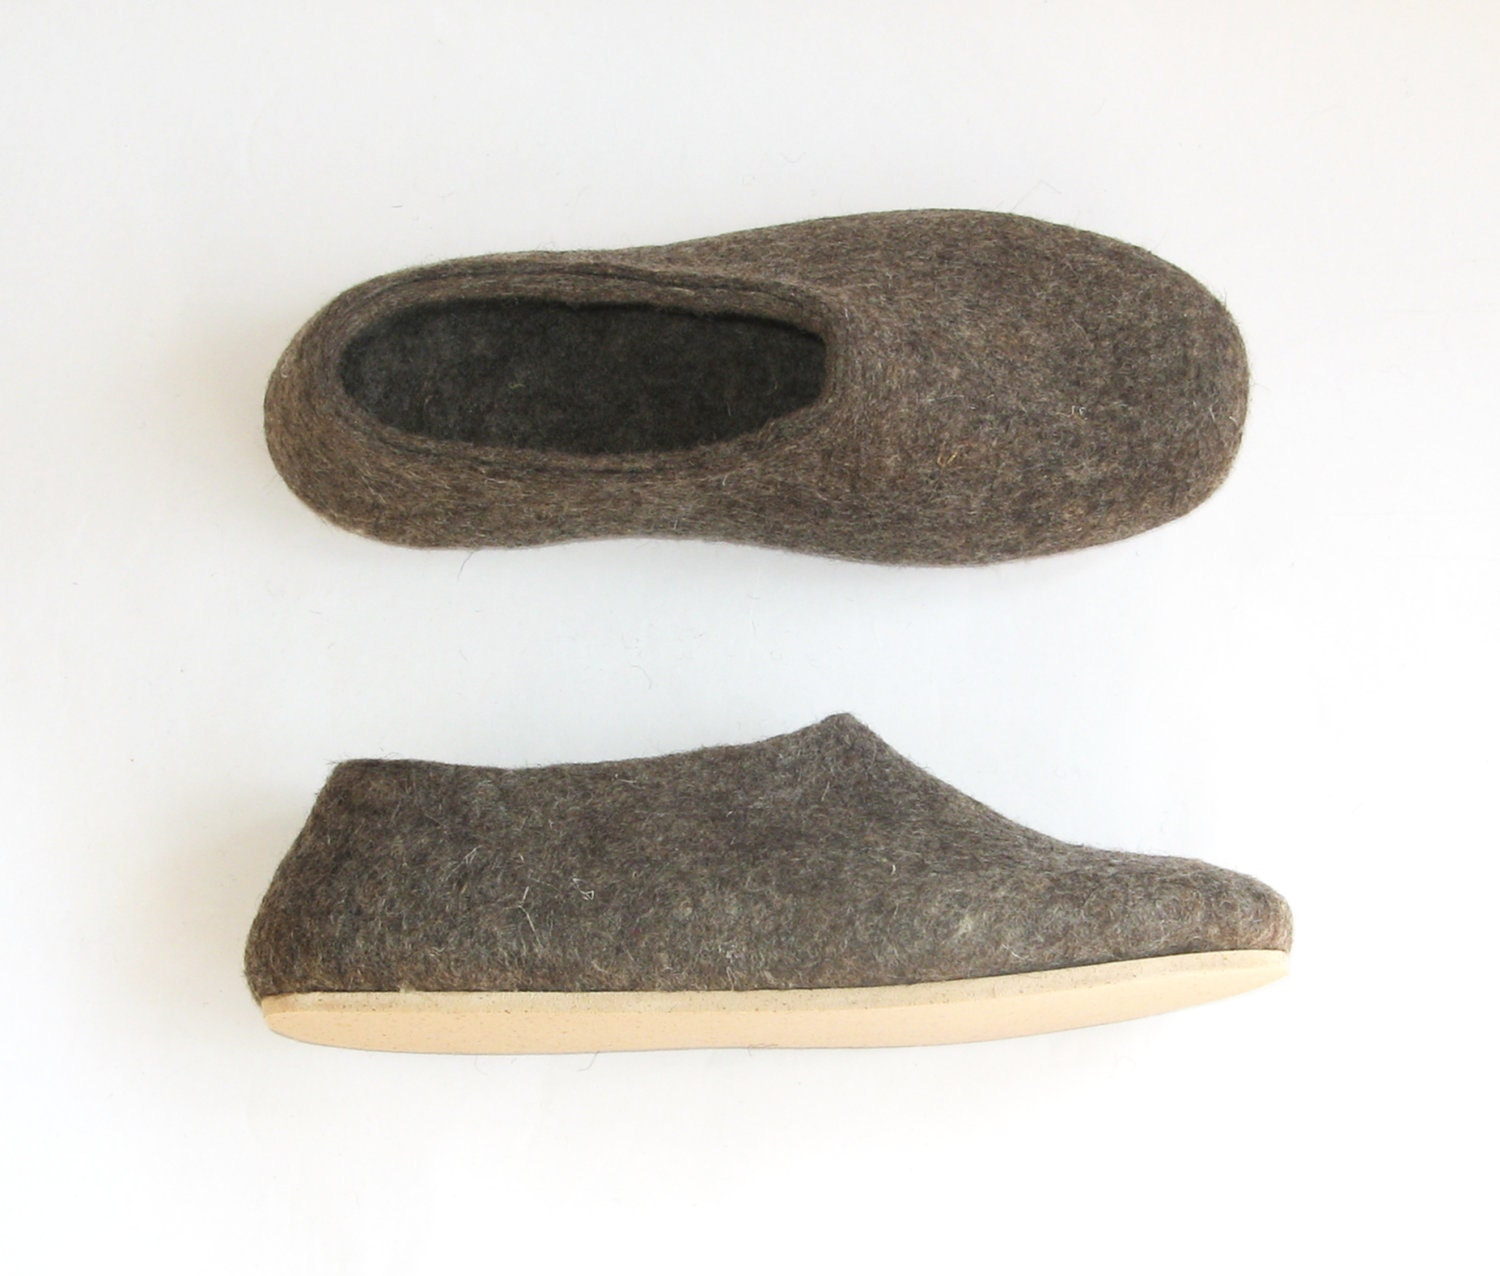 Eco Friendly Slippers: Felted Wool Slippers, Wool Boots, Cat Beds: Cork Sole